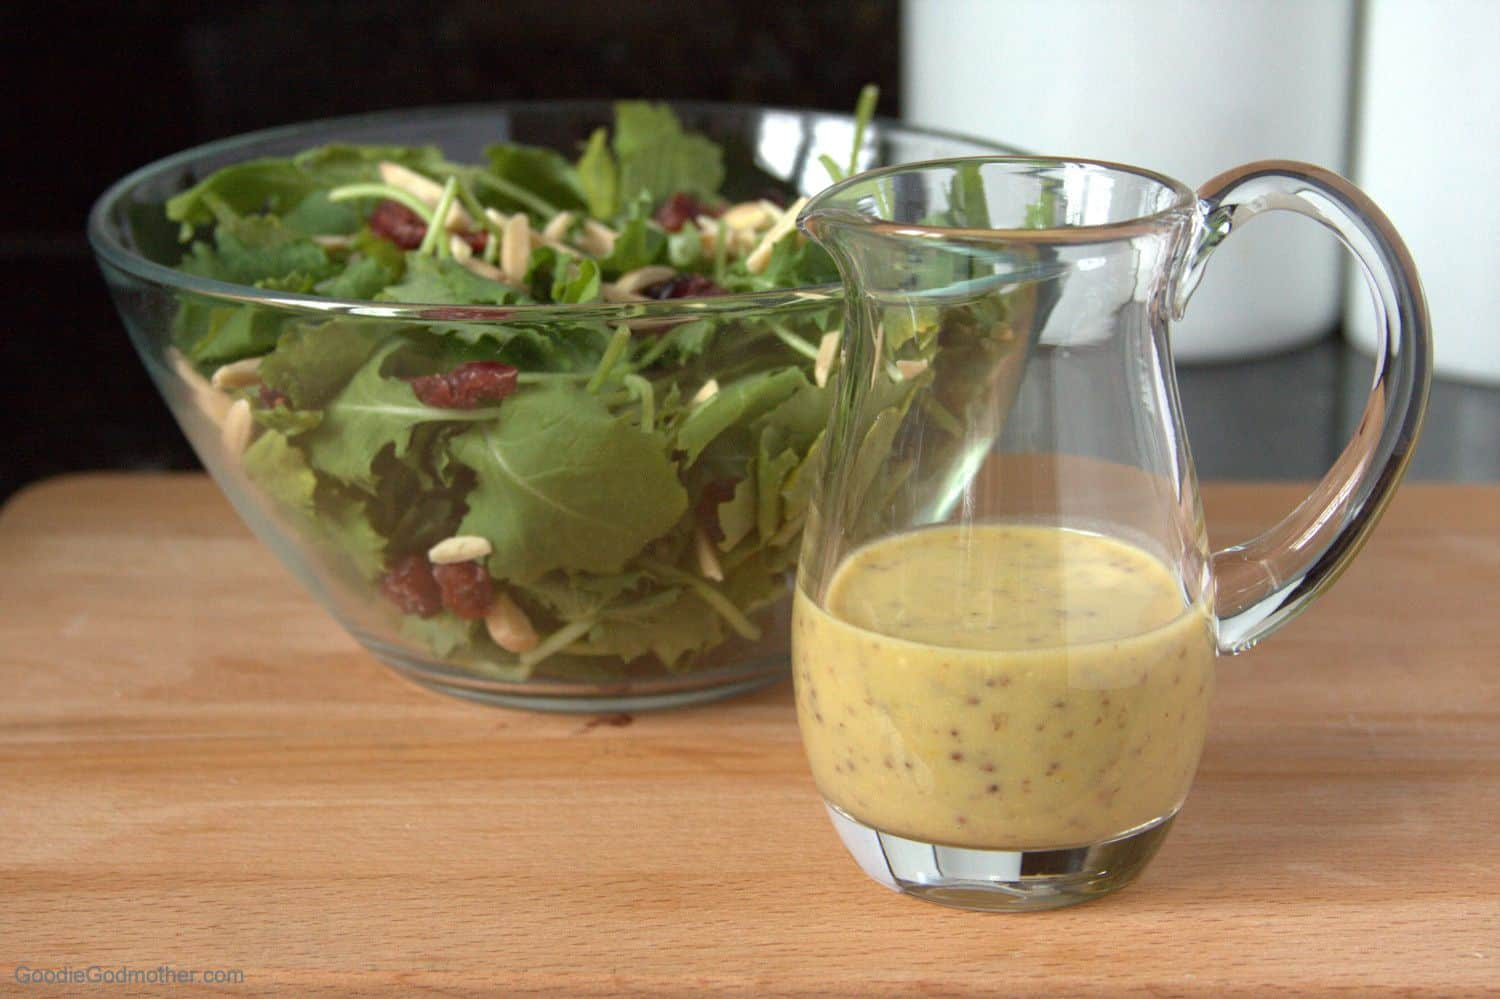 The perfect compliment to healthy dark leafy green salads! Meyer Lemon Dijon Vinaigrette Recipe